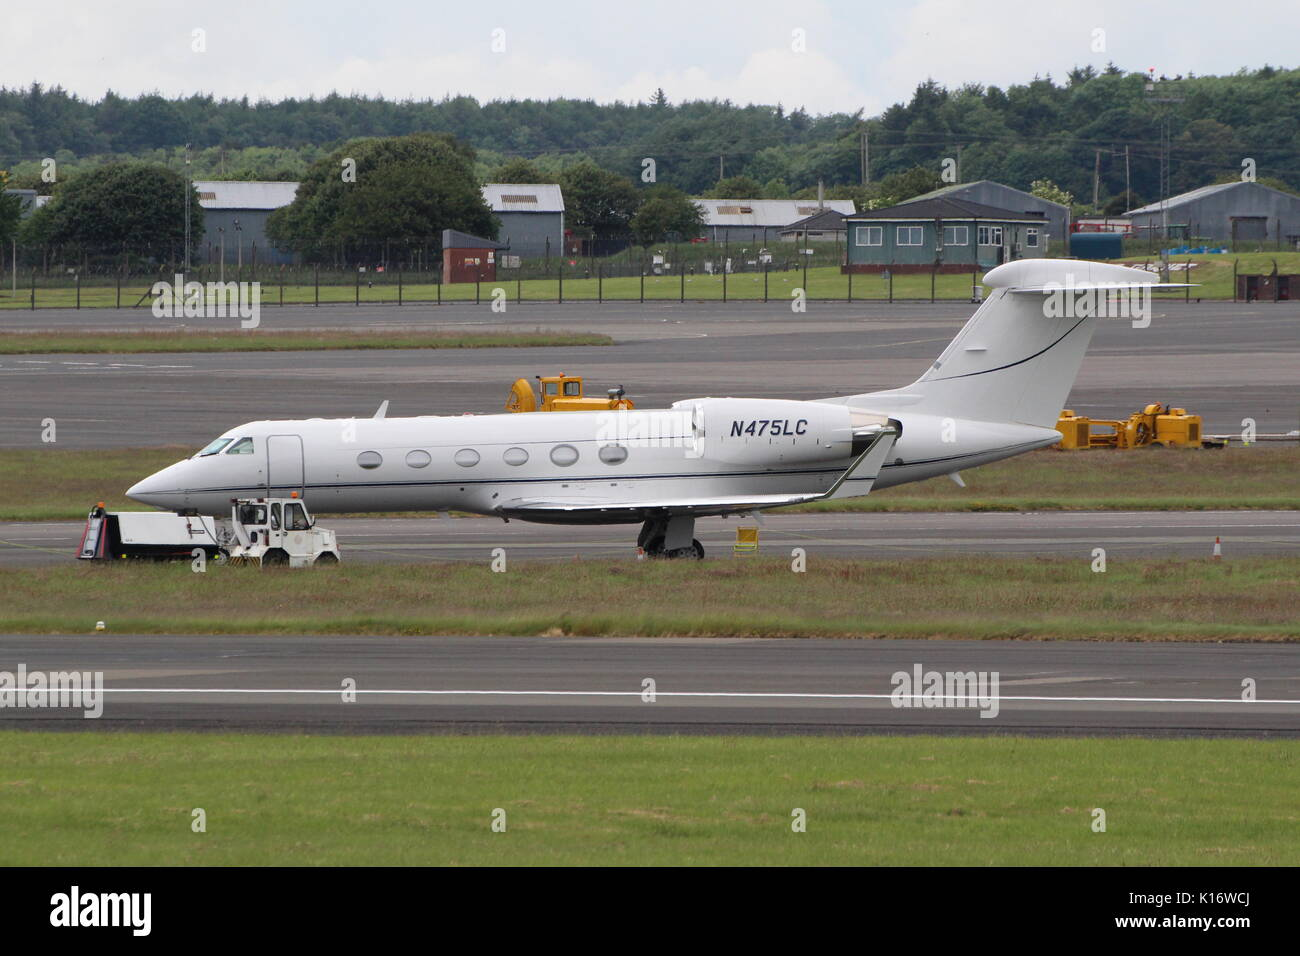 N475LC, a Gulfstream Aerospace G-IV, at Prestwick International Airport in Ayrshire. - Stock Image